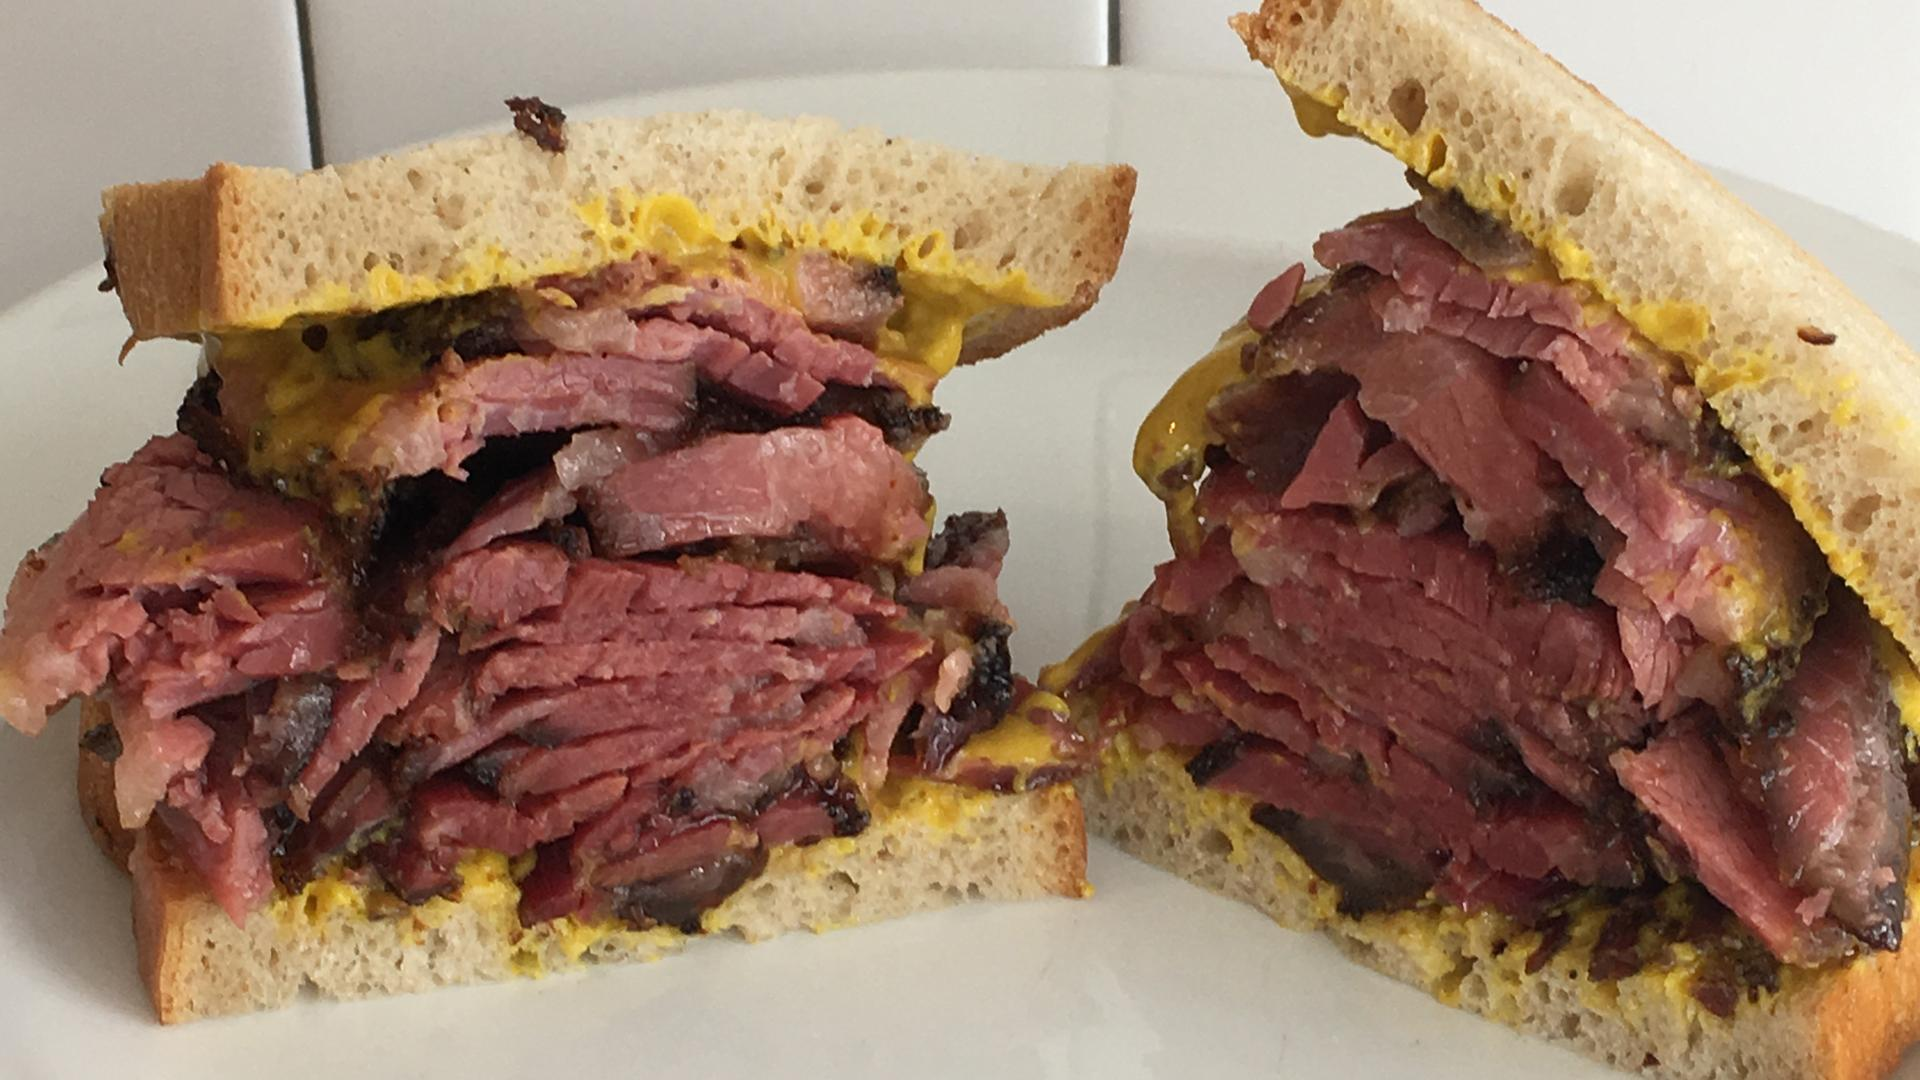 The best sandwiches in Toronto | A sandwich from When the Pig Came Home